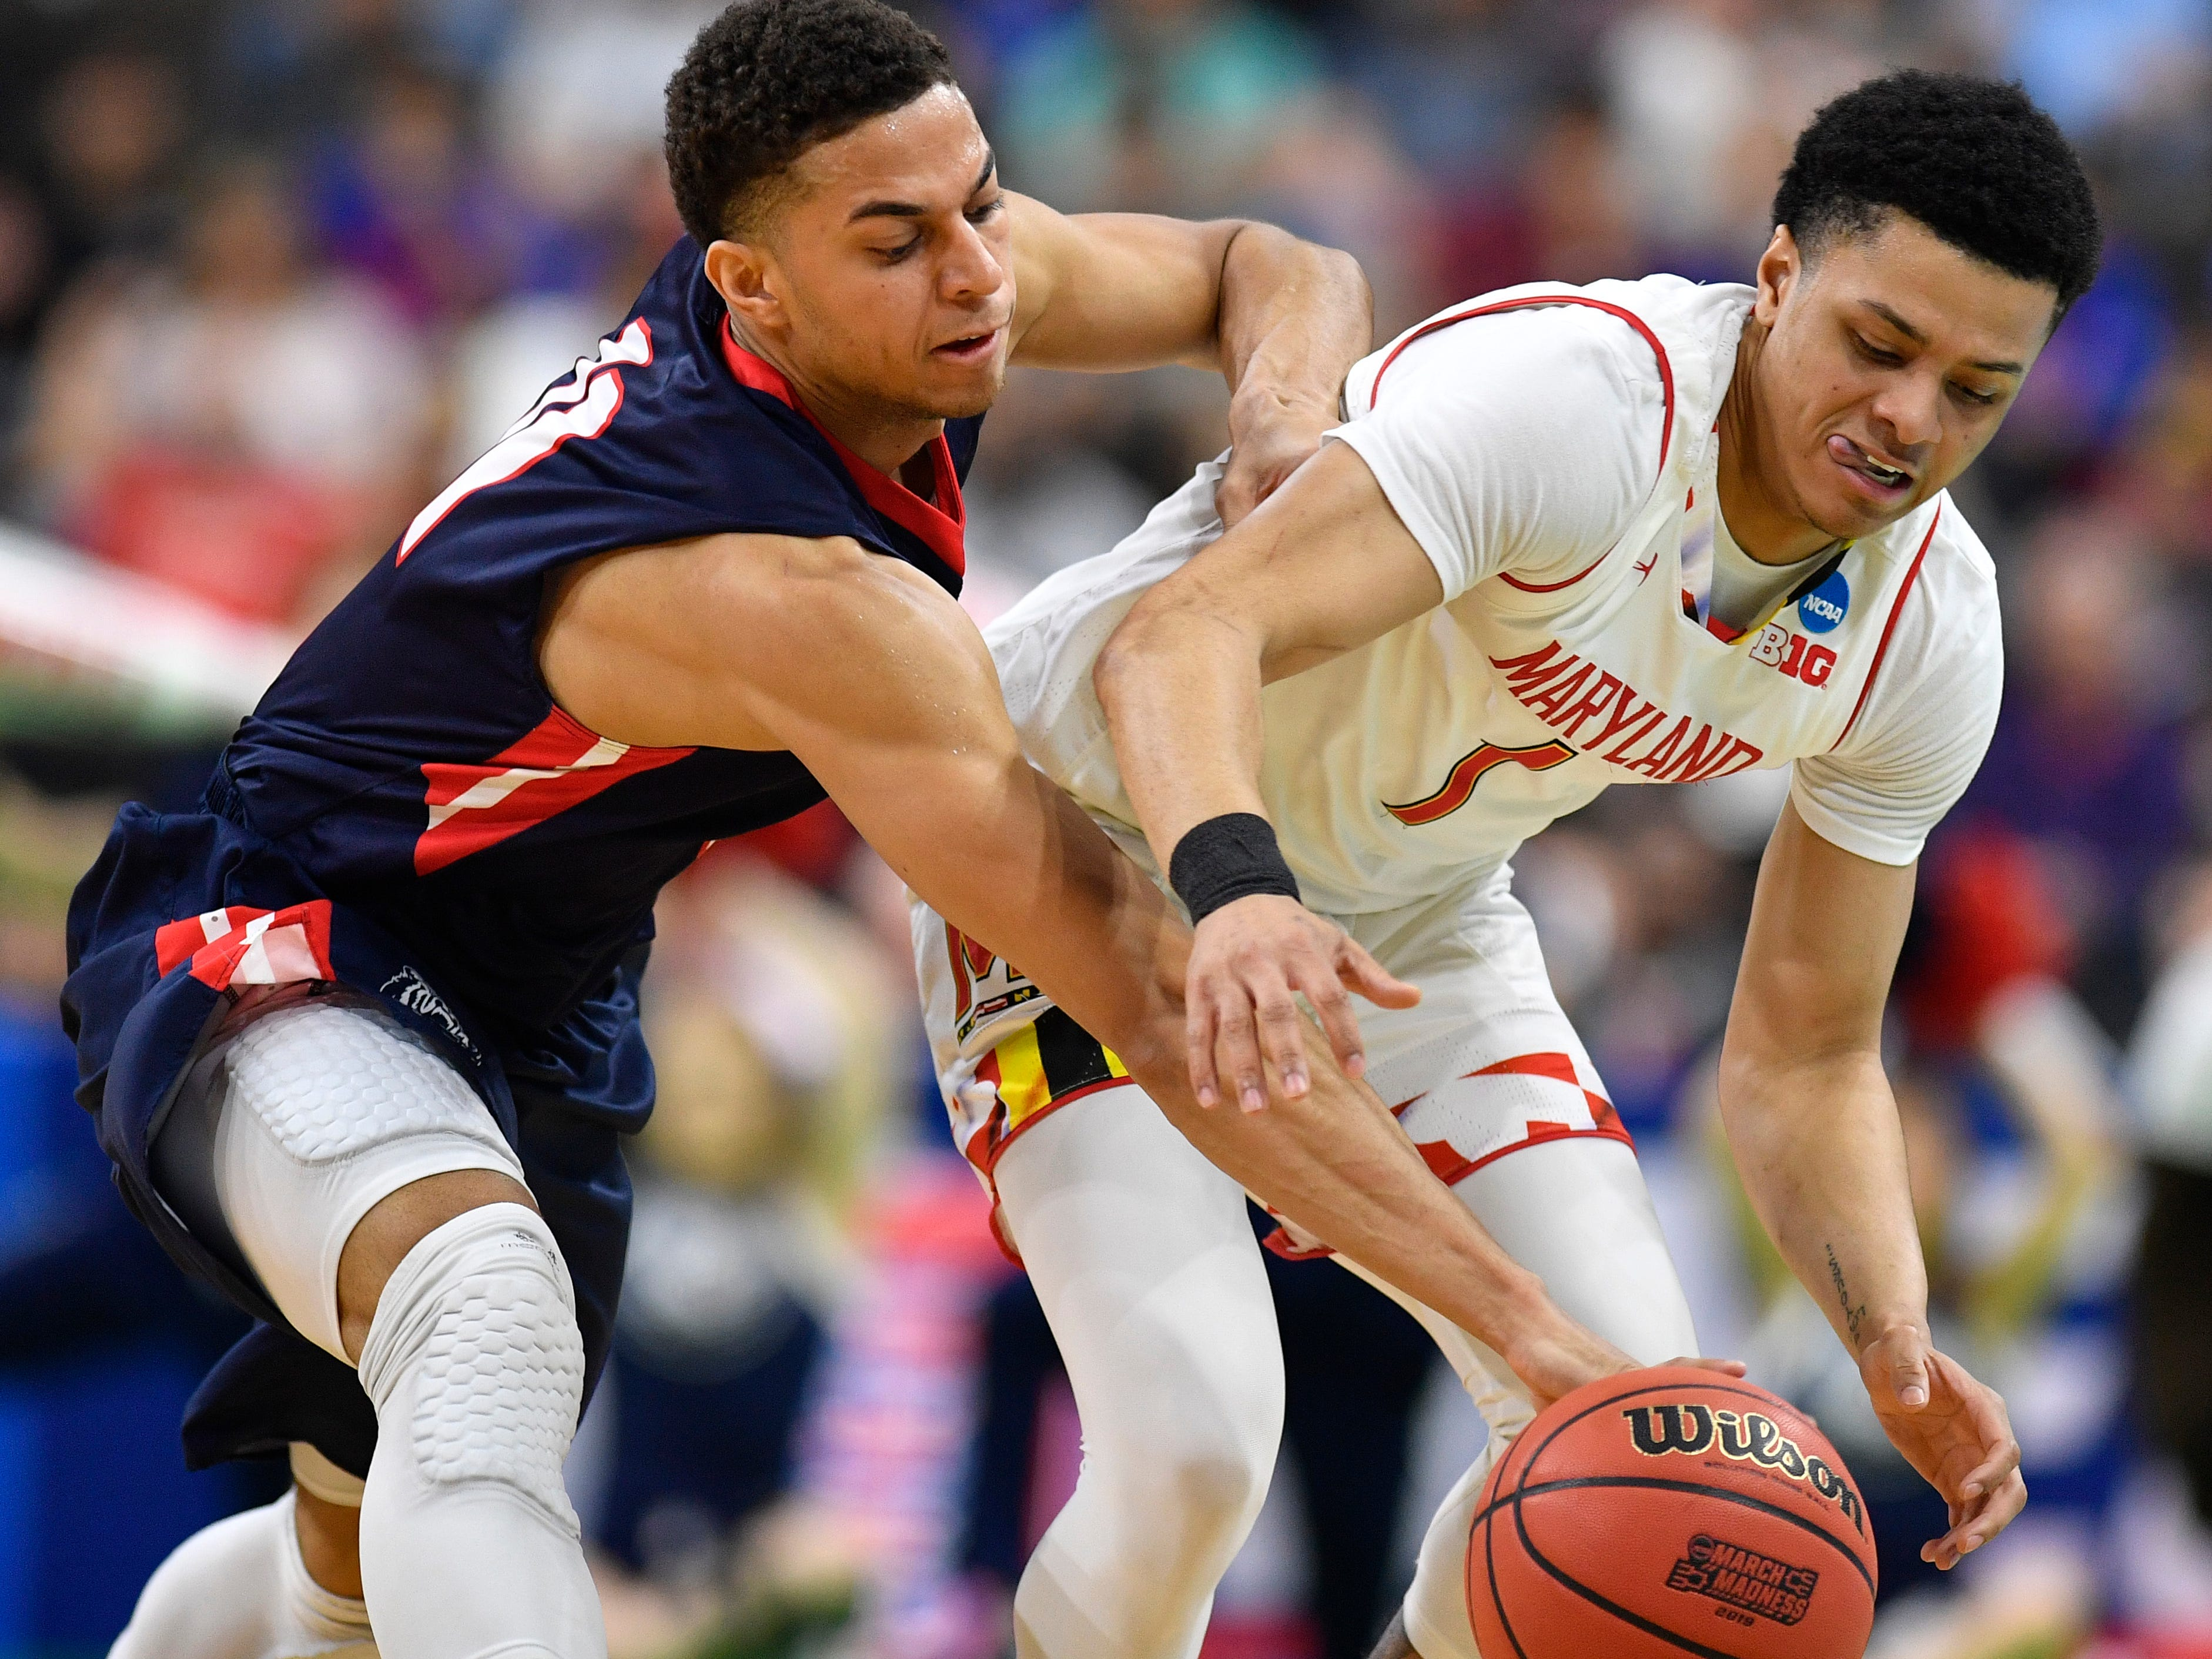 Belmont guard Kevin McClain (11) and Maryland guard Anthony Cowan Jr. (1) chase after a ball during the first half of the first-round NCAA college basketball tournament game at VyStar Veterans Memorial Arena in Jacksonville, Fla., Thursday, March 21, 2019.